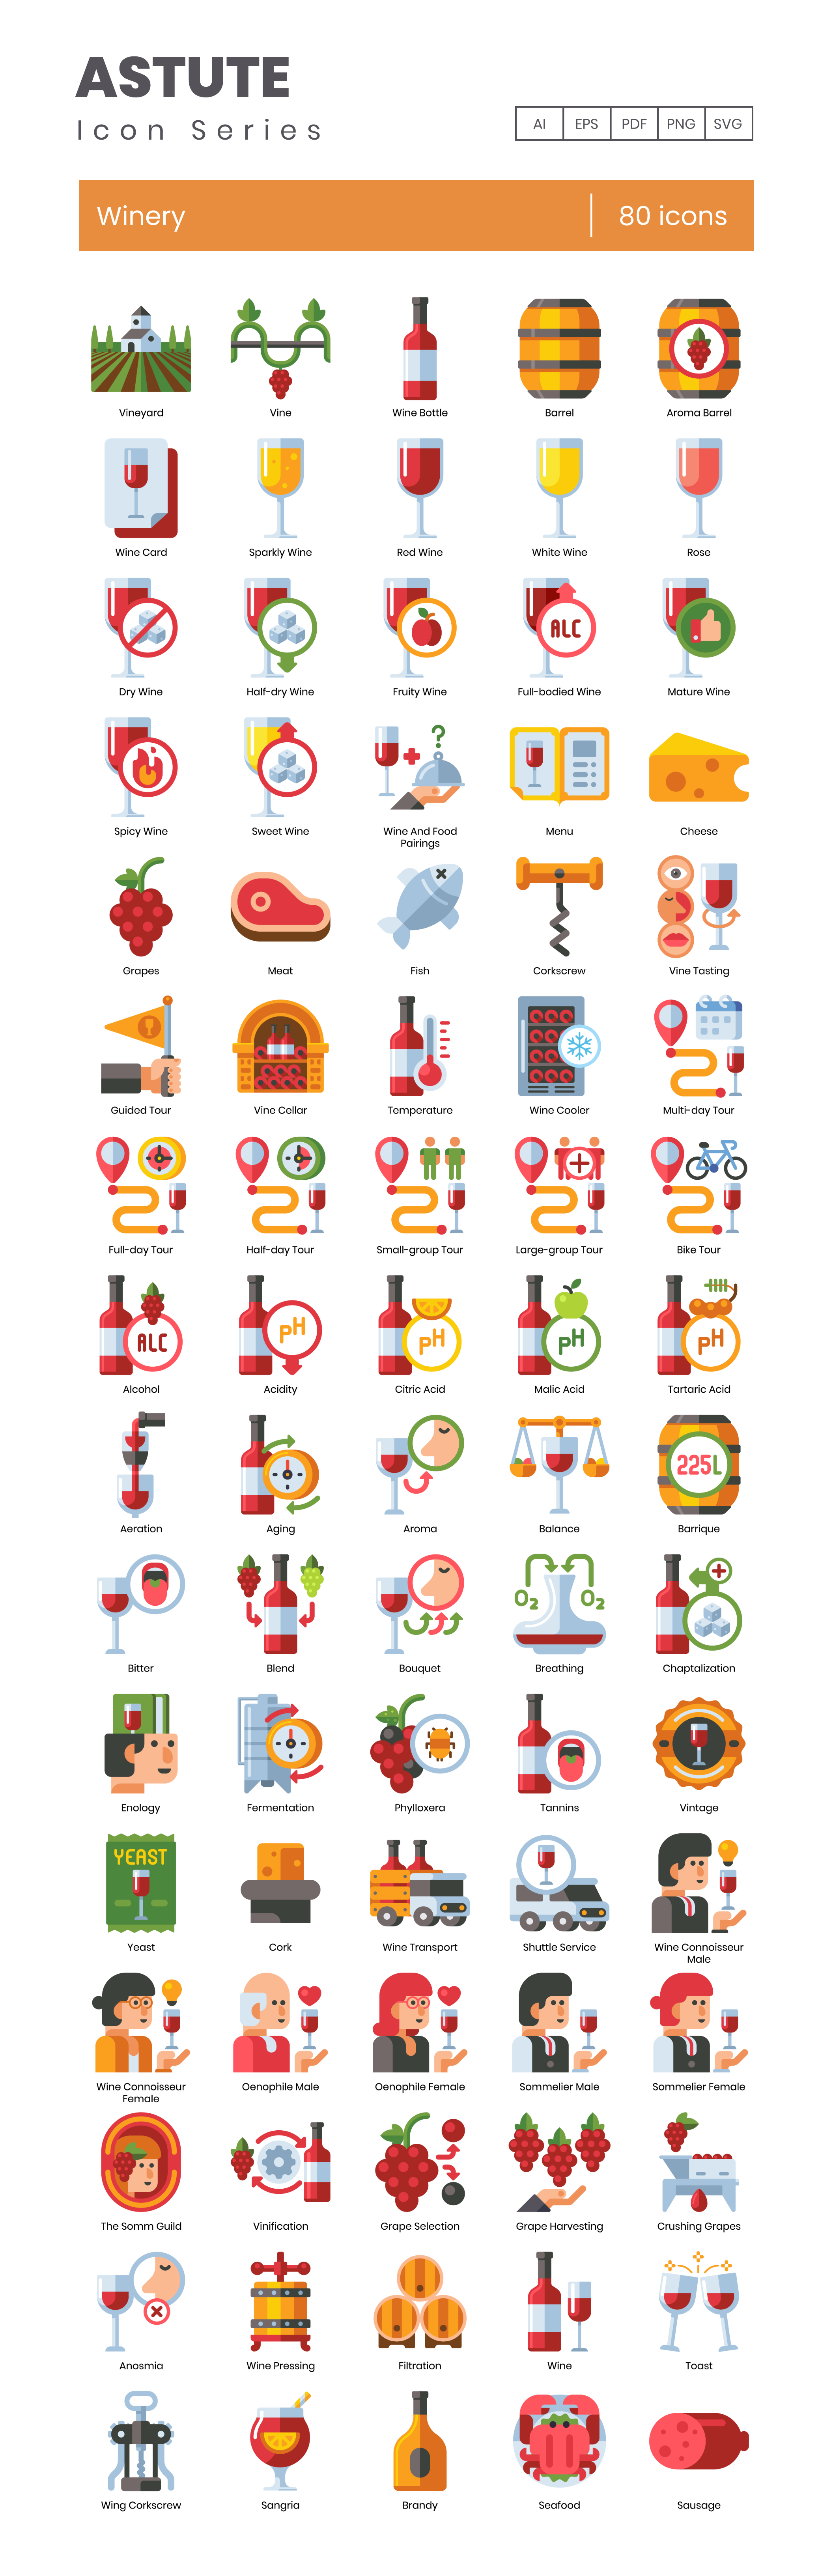 winery vector icons